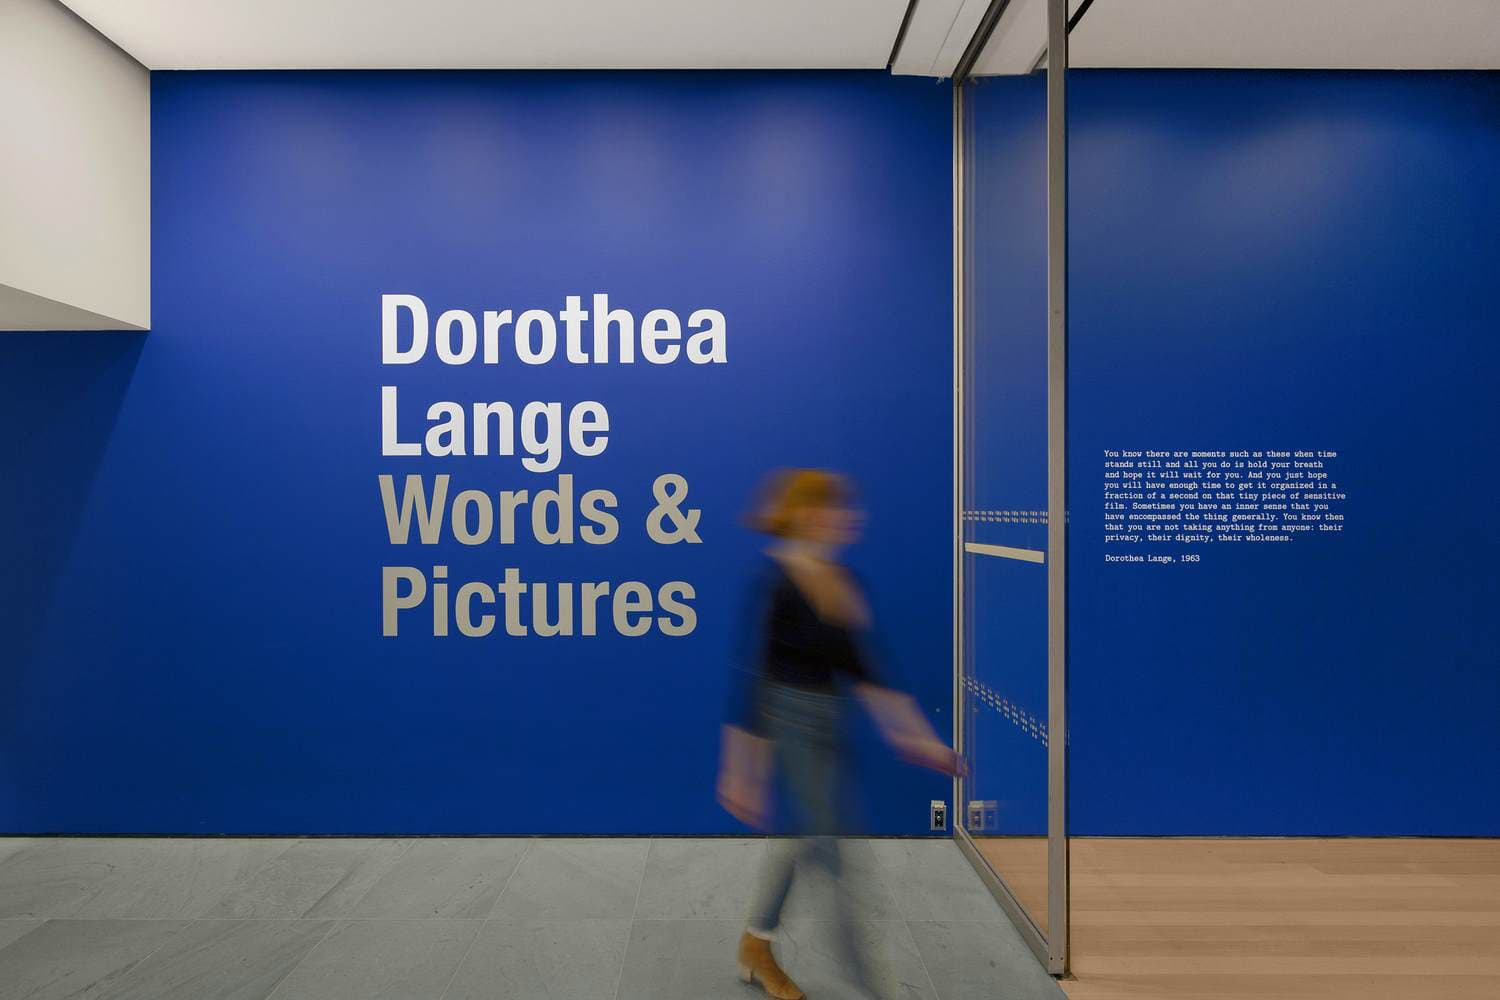 MoMA: Dorothea Lange: Words & Pictures